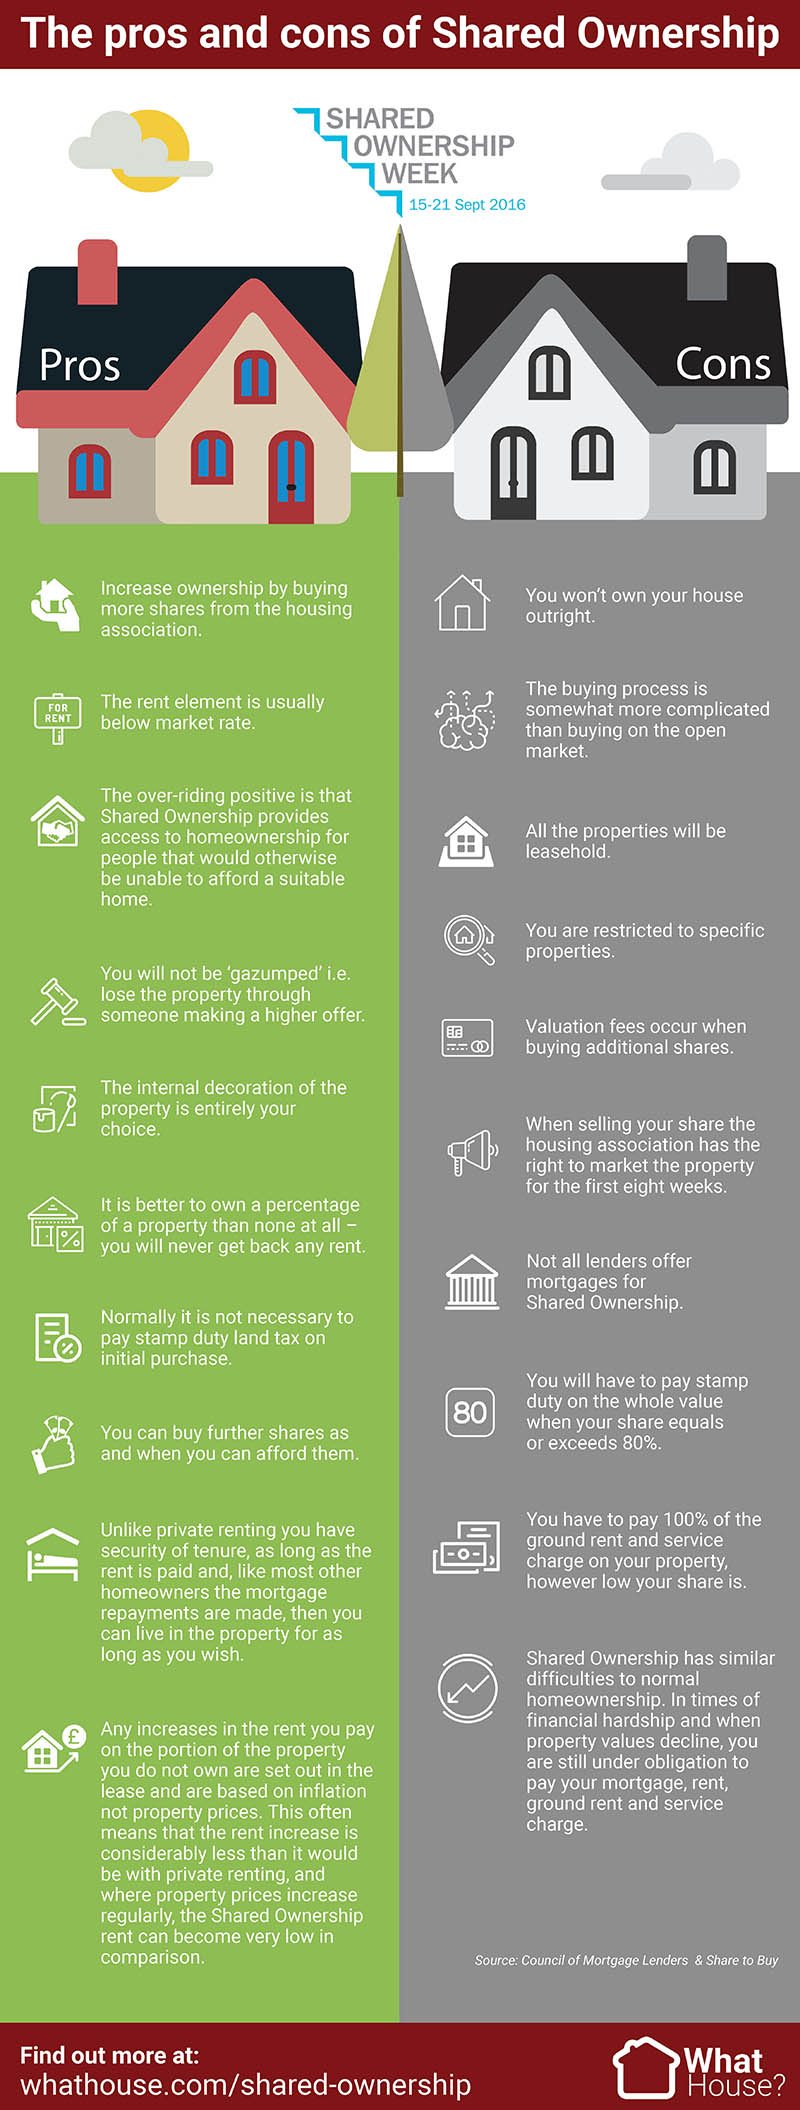 Pros and cons of Shared Ownership infographic